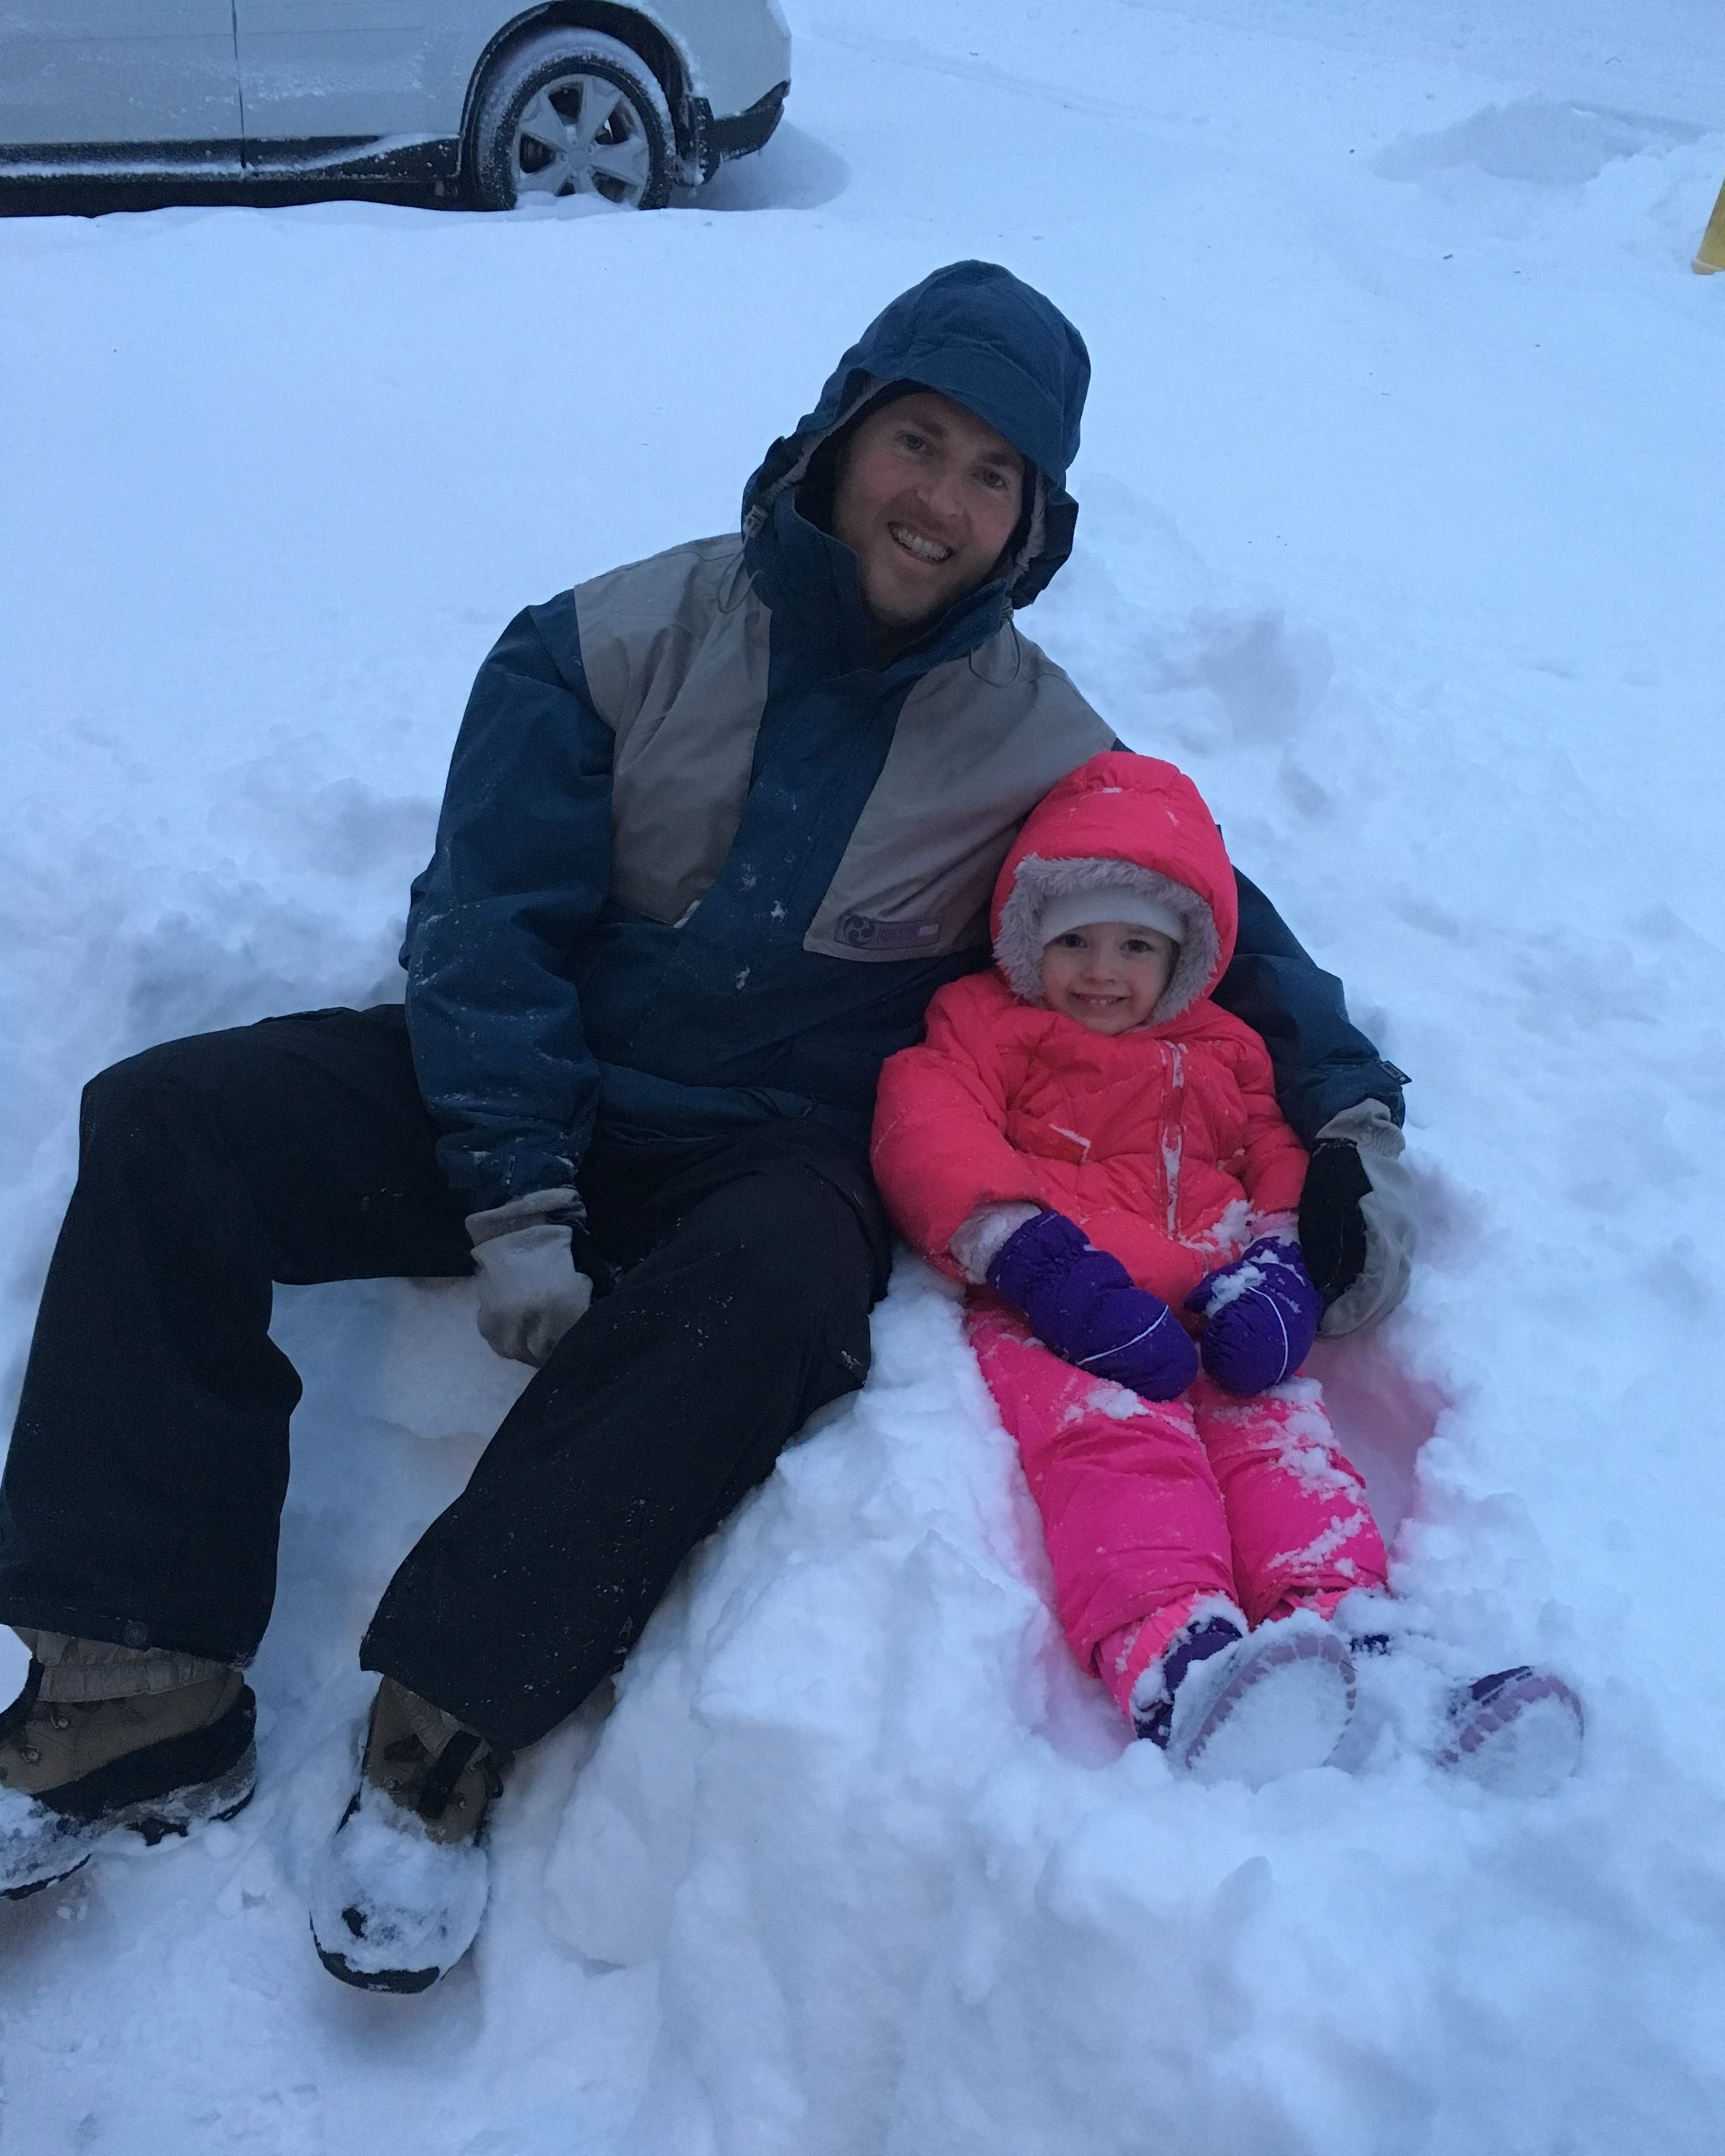 Fun in the snow with dad